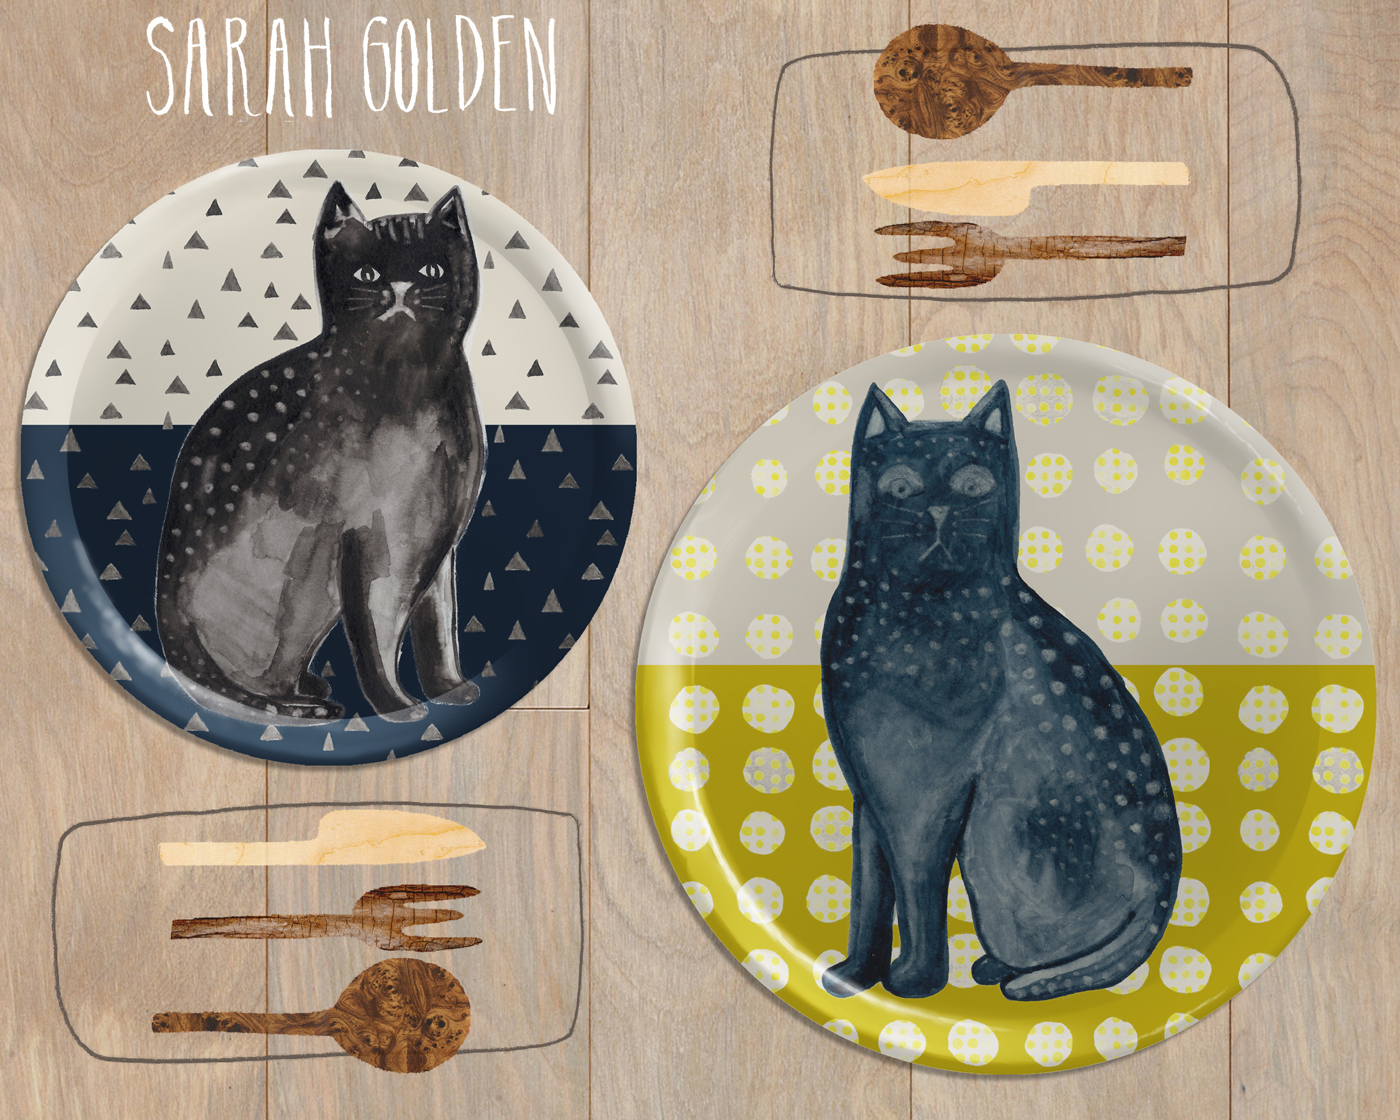 Cat Plates Mock Up by Sarah Golden -  www.sarahgolden.org